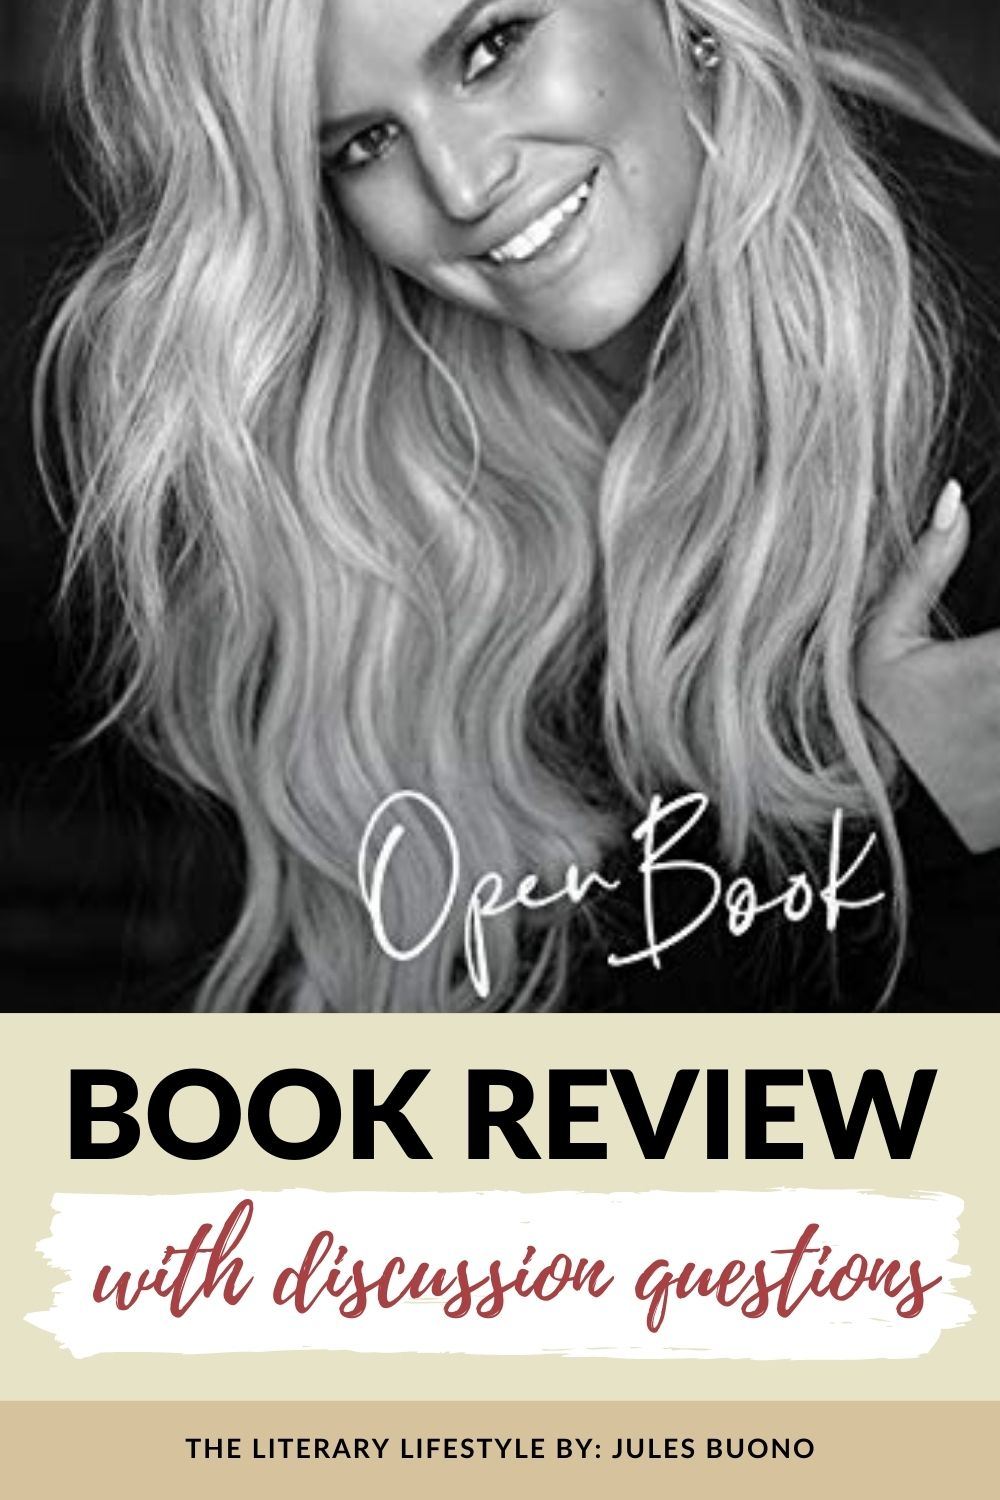 Book Review: Jessica Simpson's Open Book